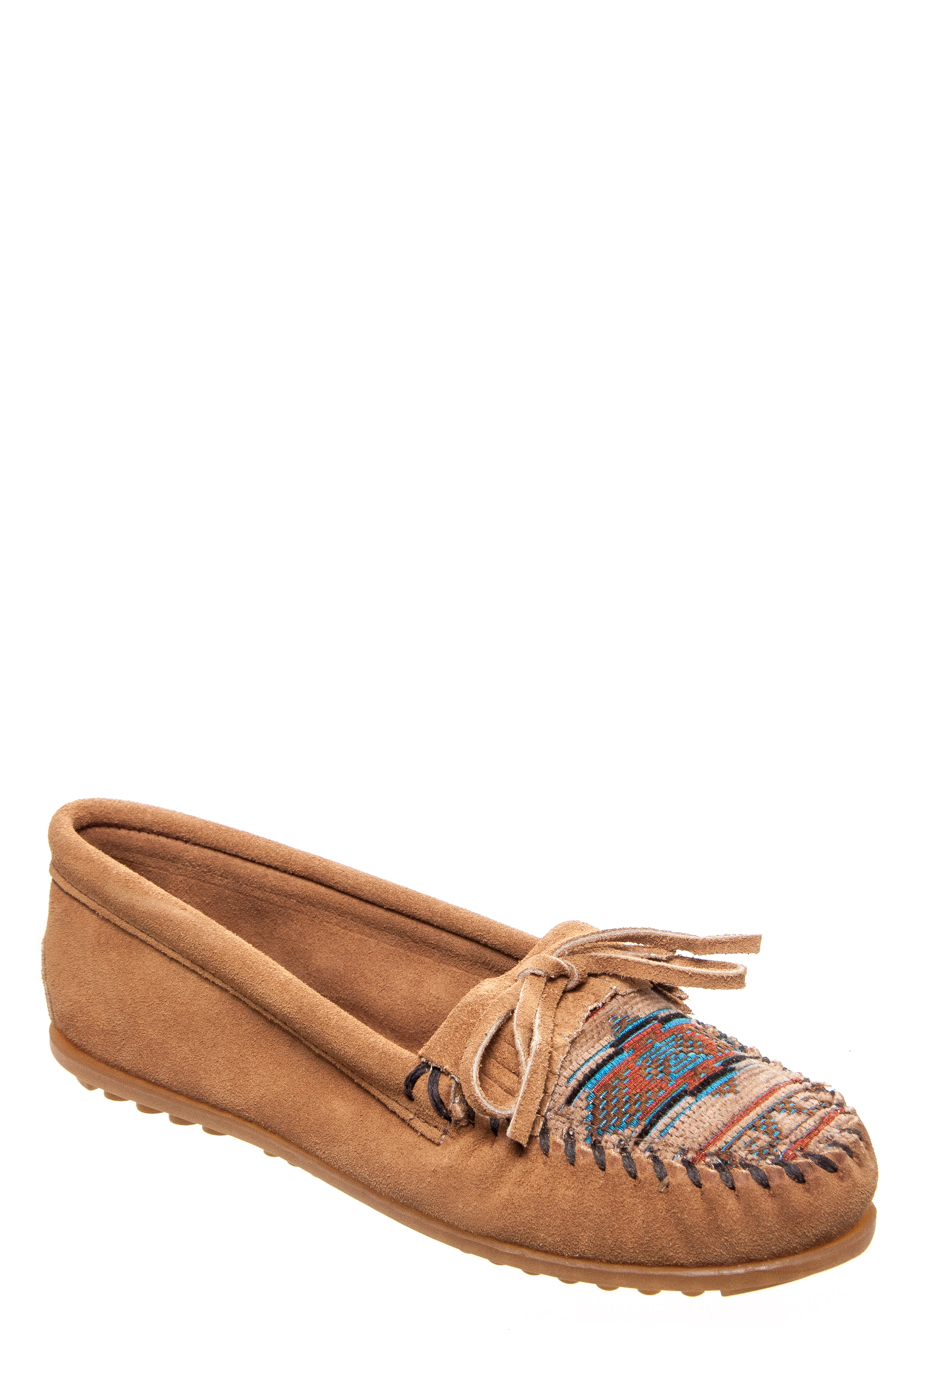 Minnetonka El Paso Suede Moccasins - Taupe